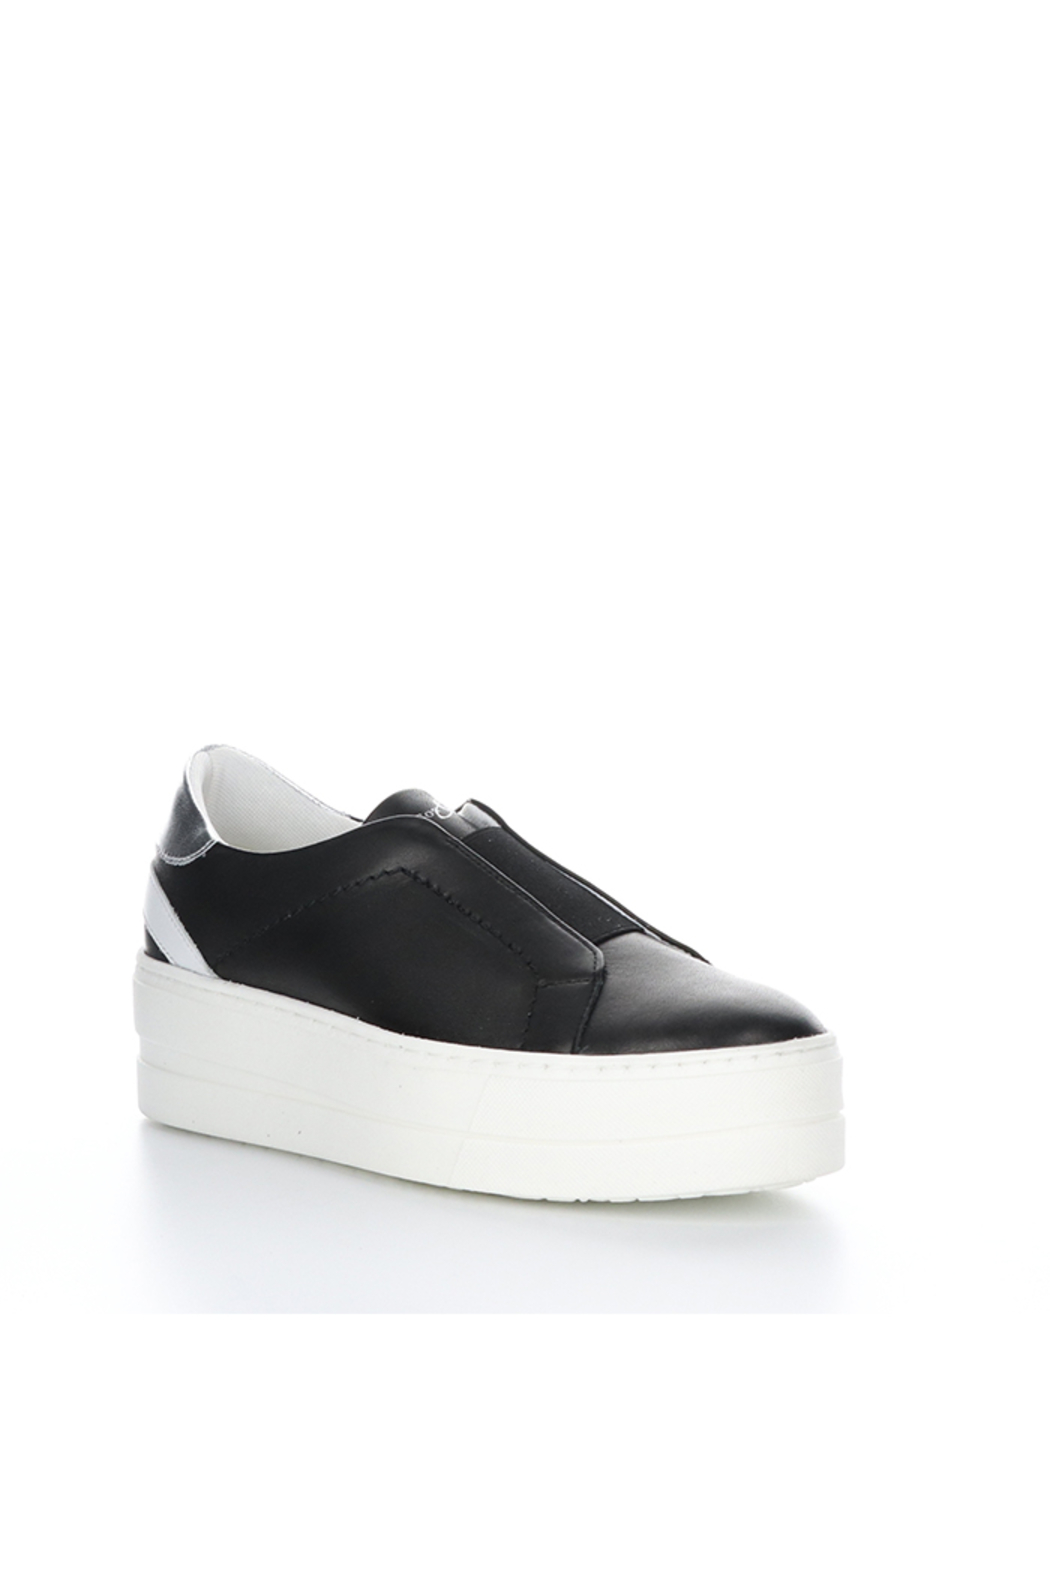 Bos & Co. Mona Black Leather Slip On - Front Cropped Image